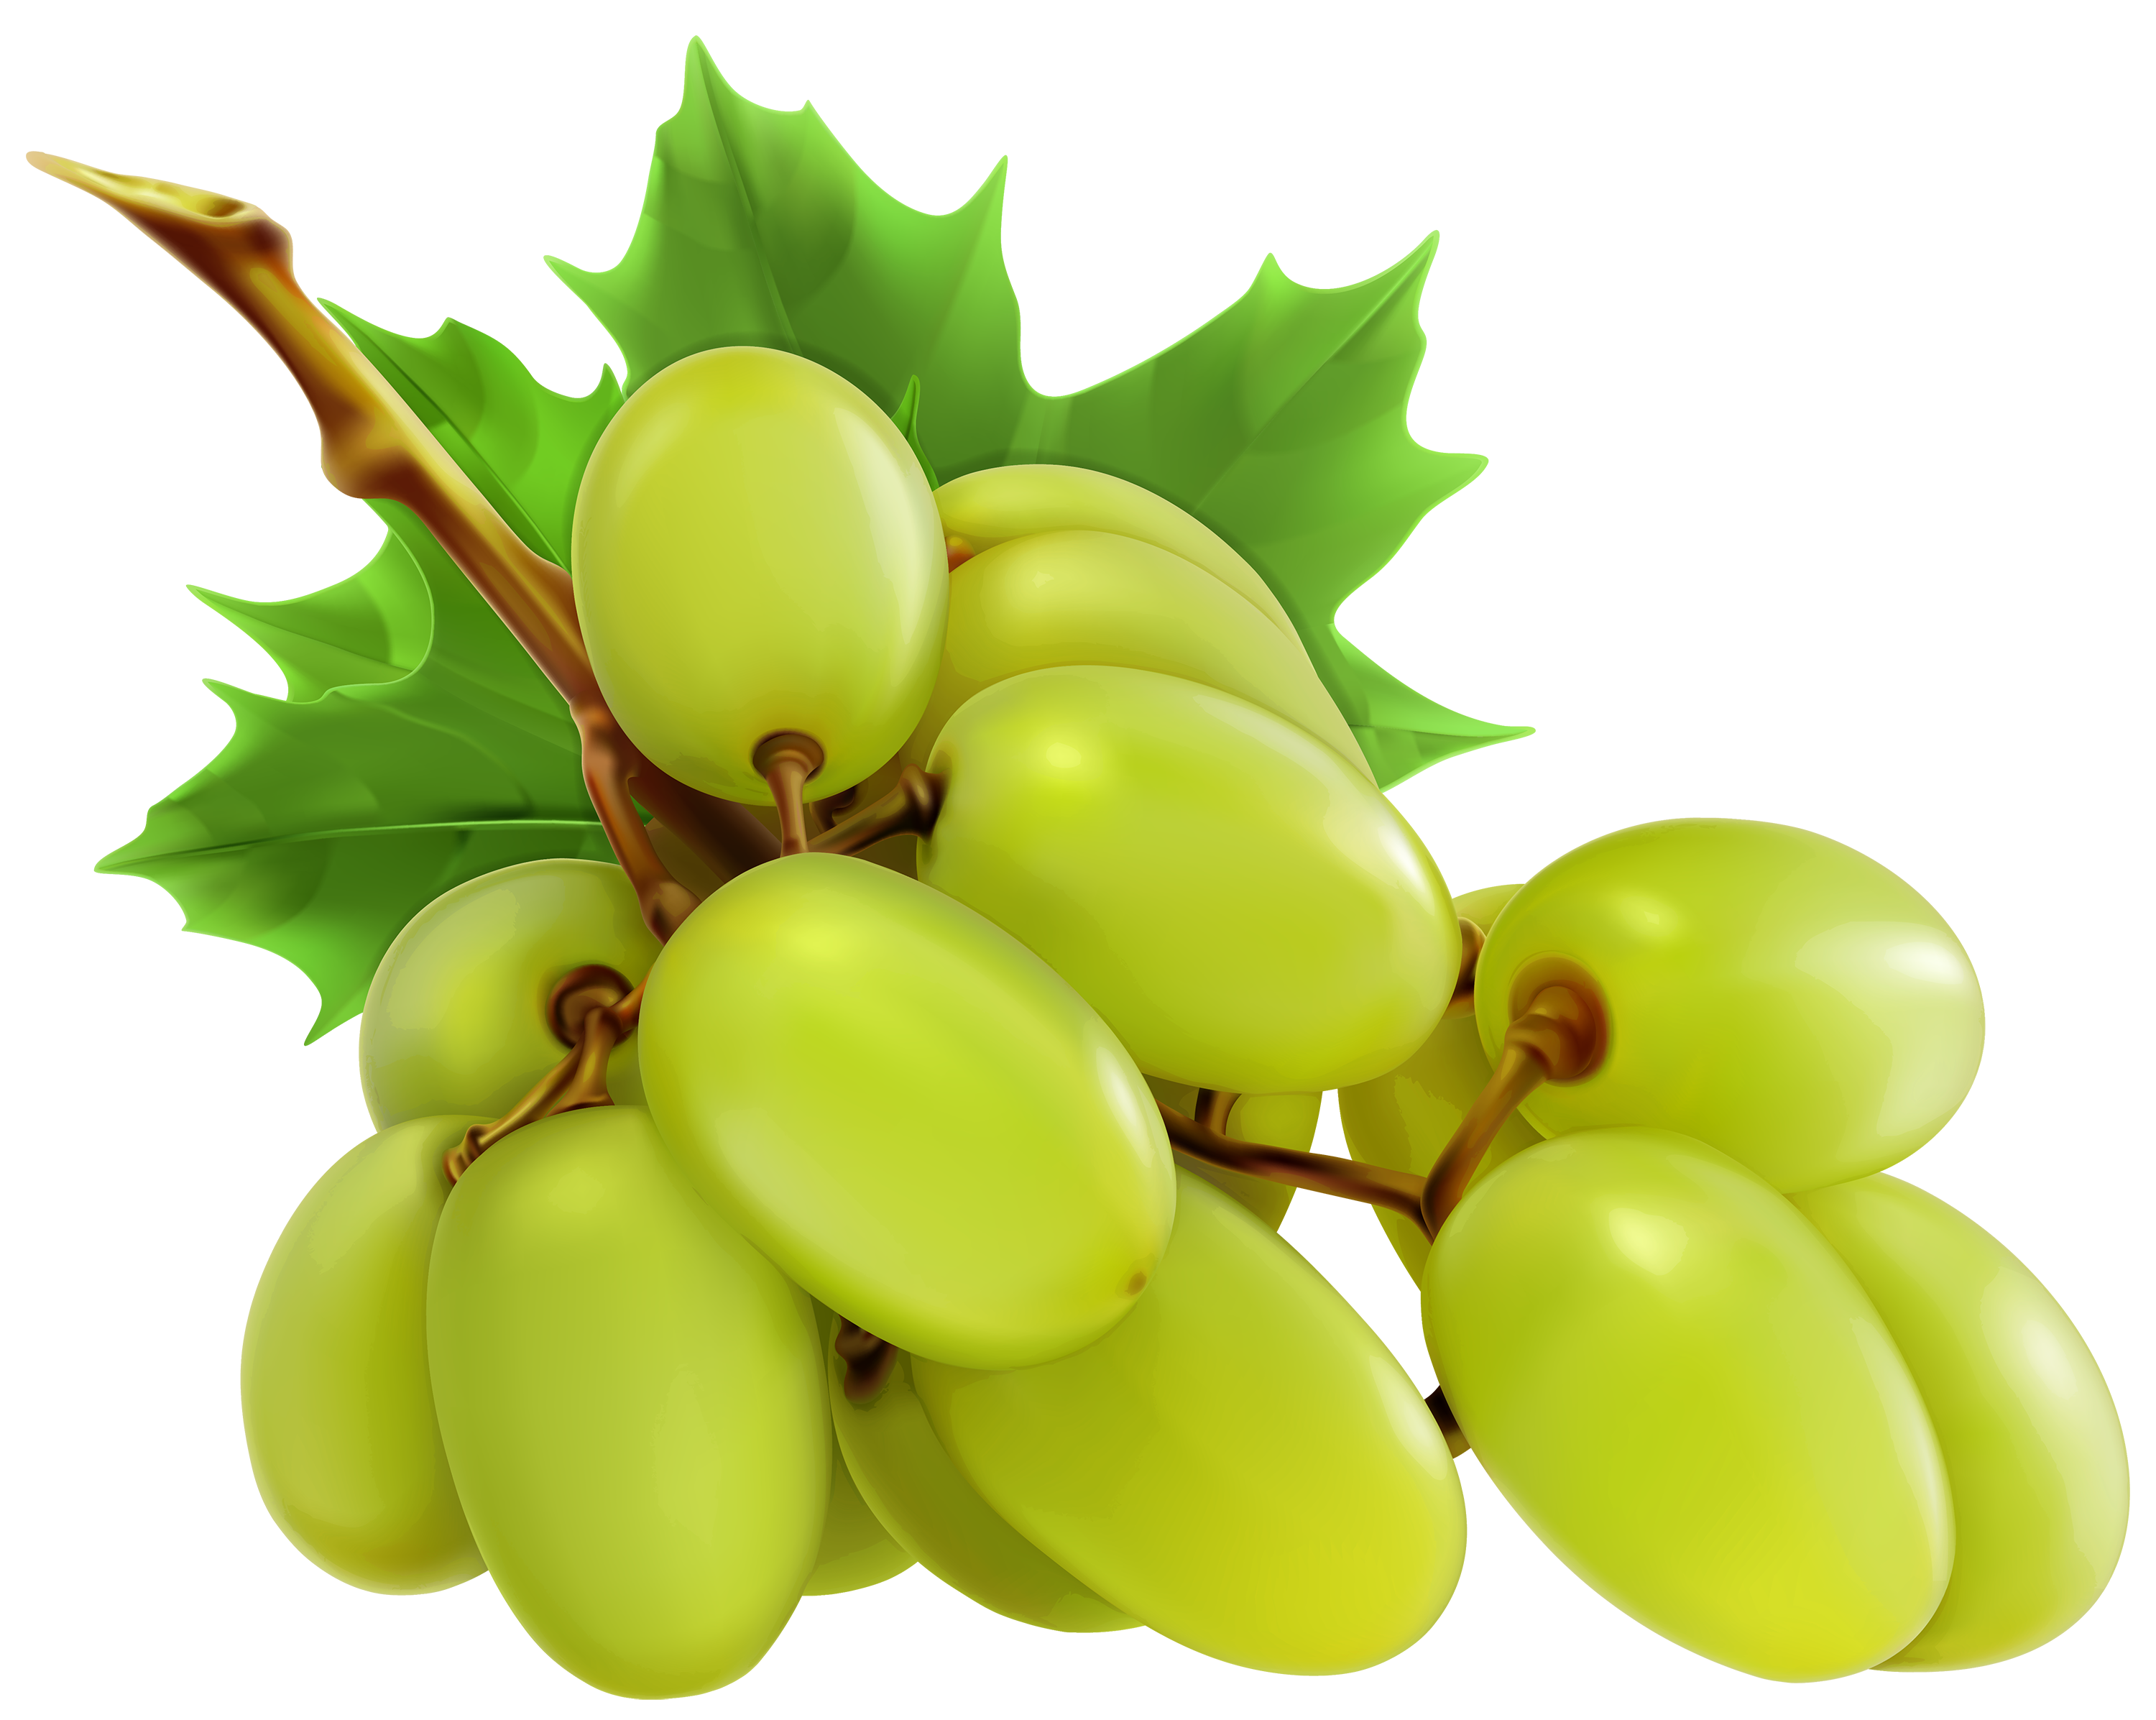 Grapes clipart #20, Download drawings